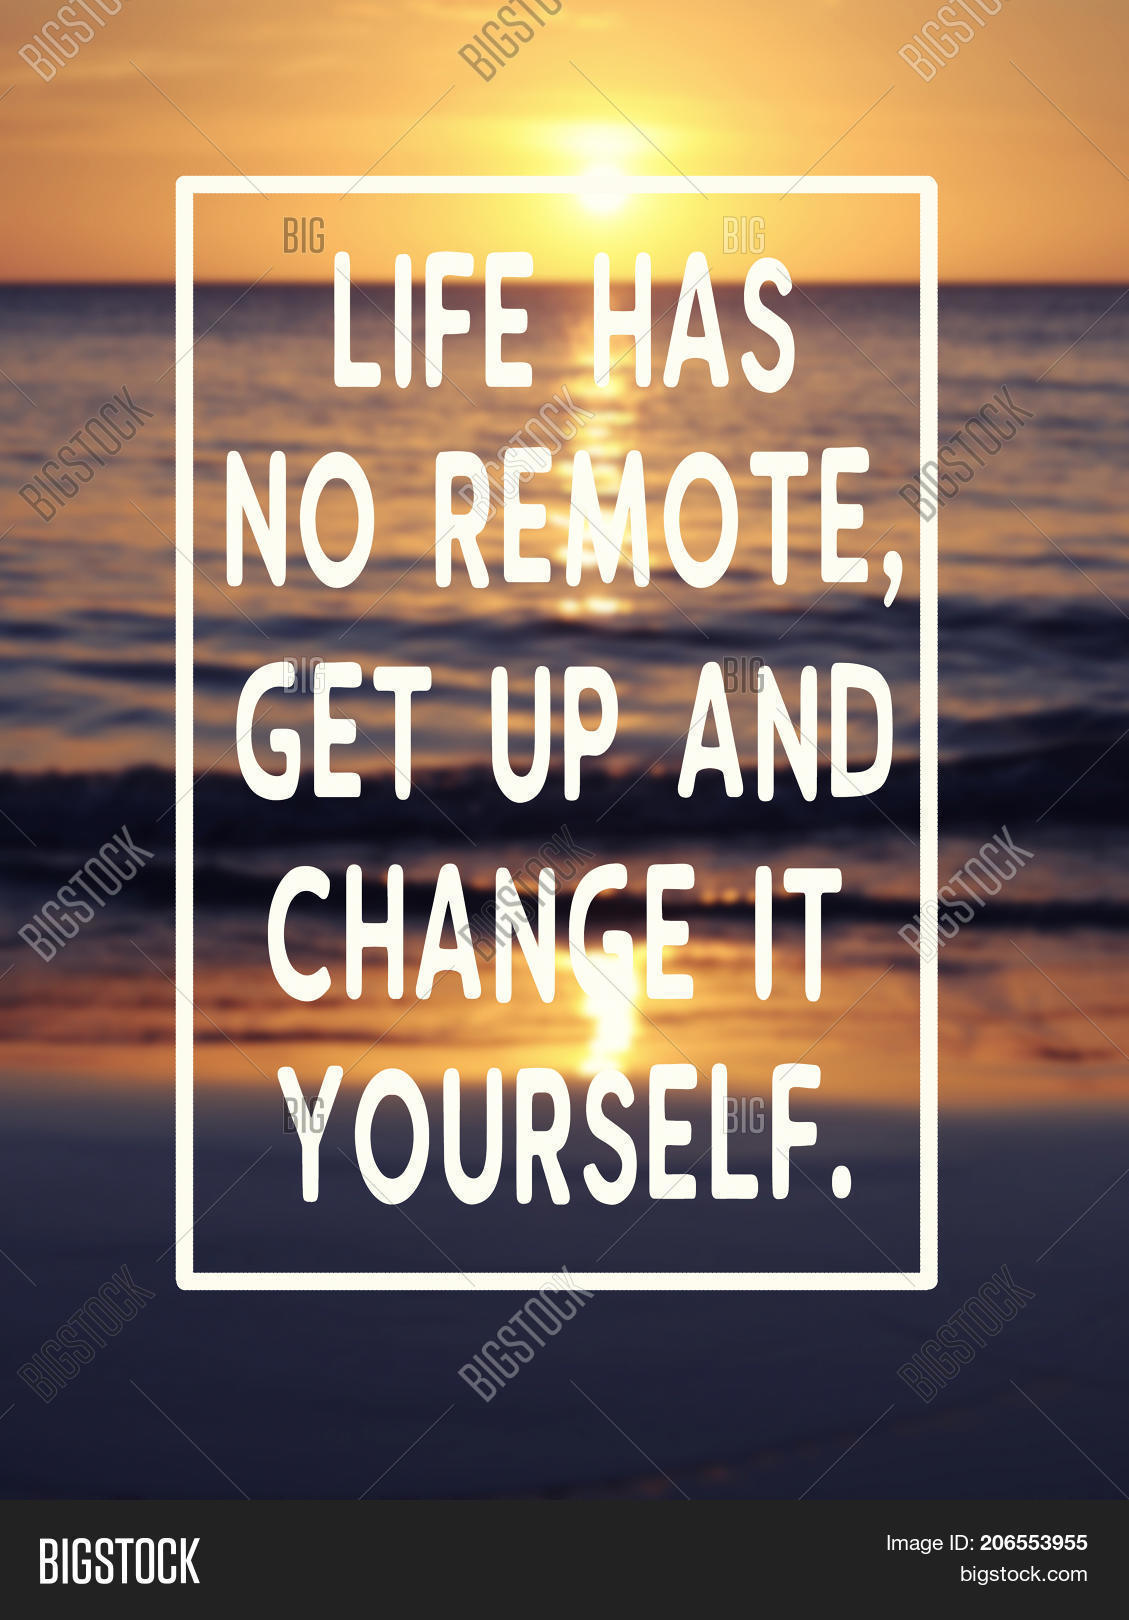 Motivational Inspirational Quotes About Life Motivational Inspirational Quotes Image & Photo  Bigstock